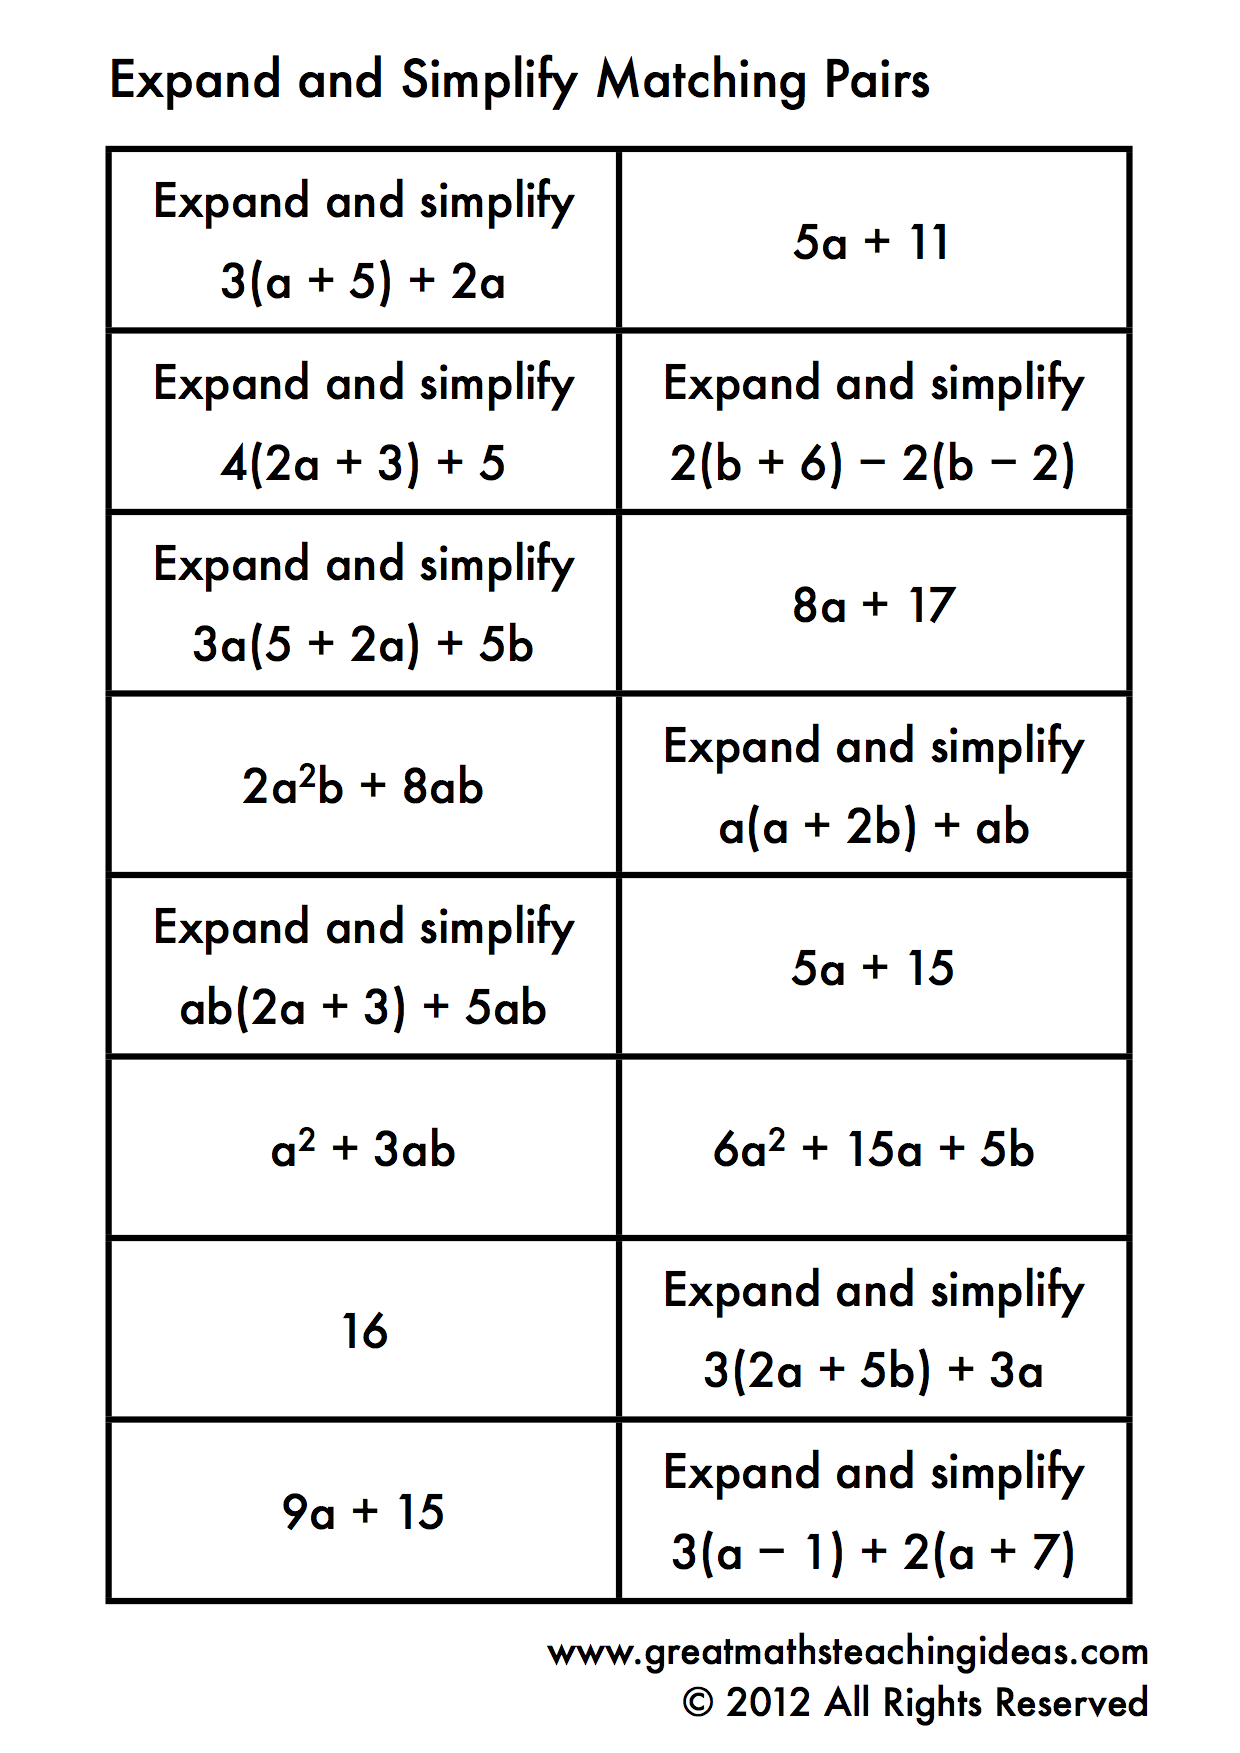 Expand And Simplify Single Brackets Matching Pairs